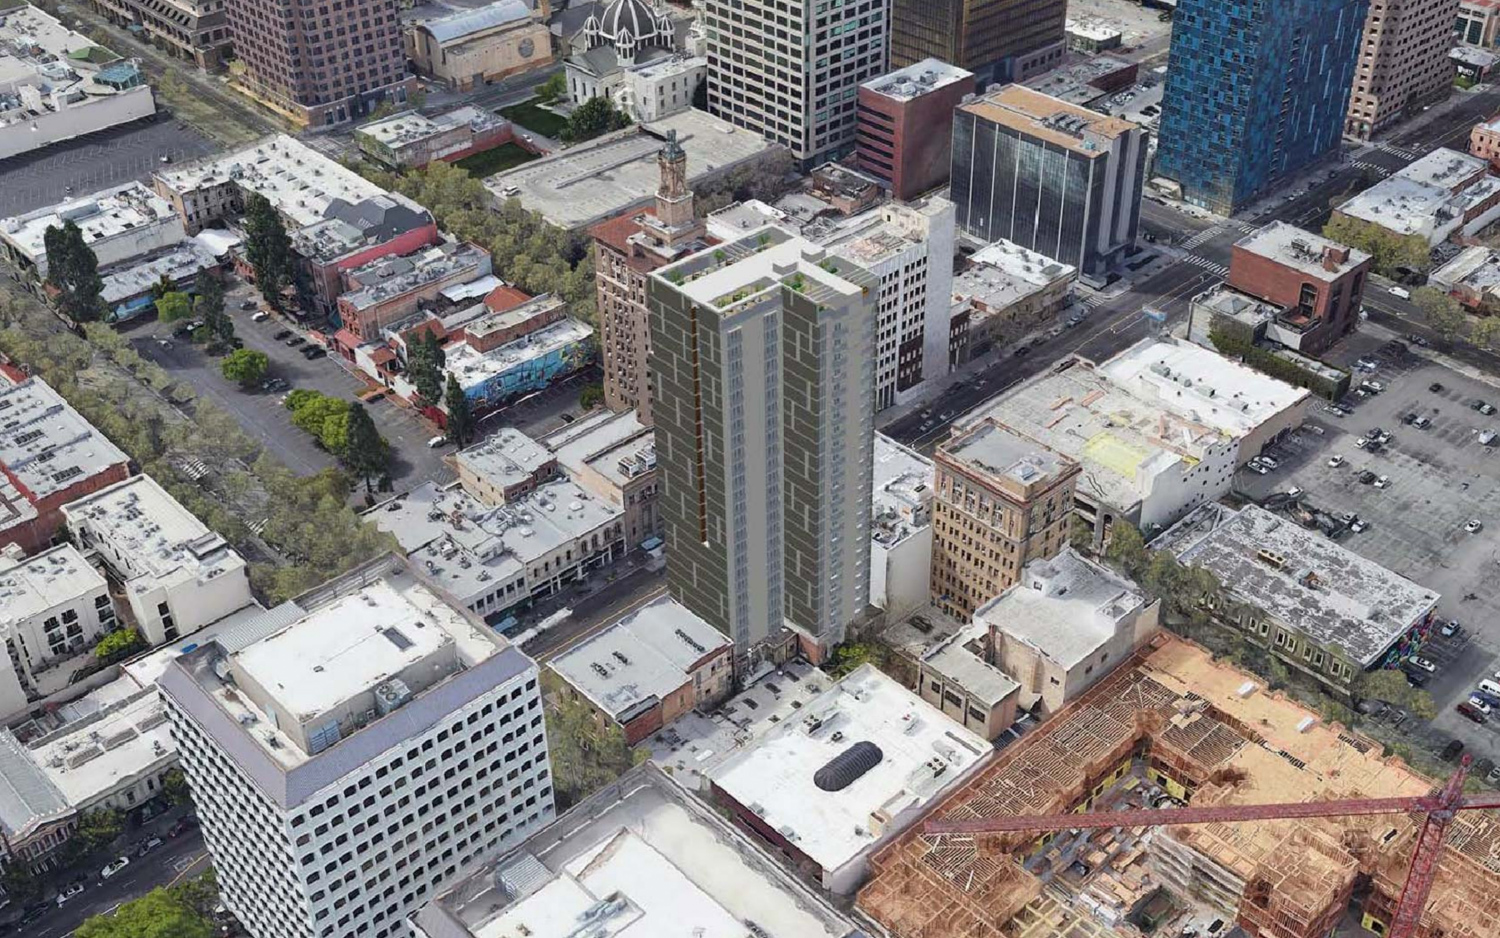 17 East Santa Clara Street aerial view, design by Anderson Architects